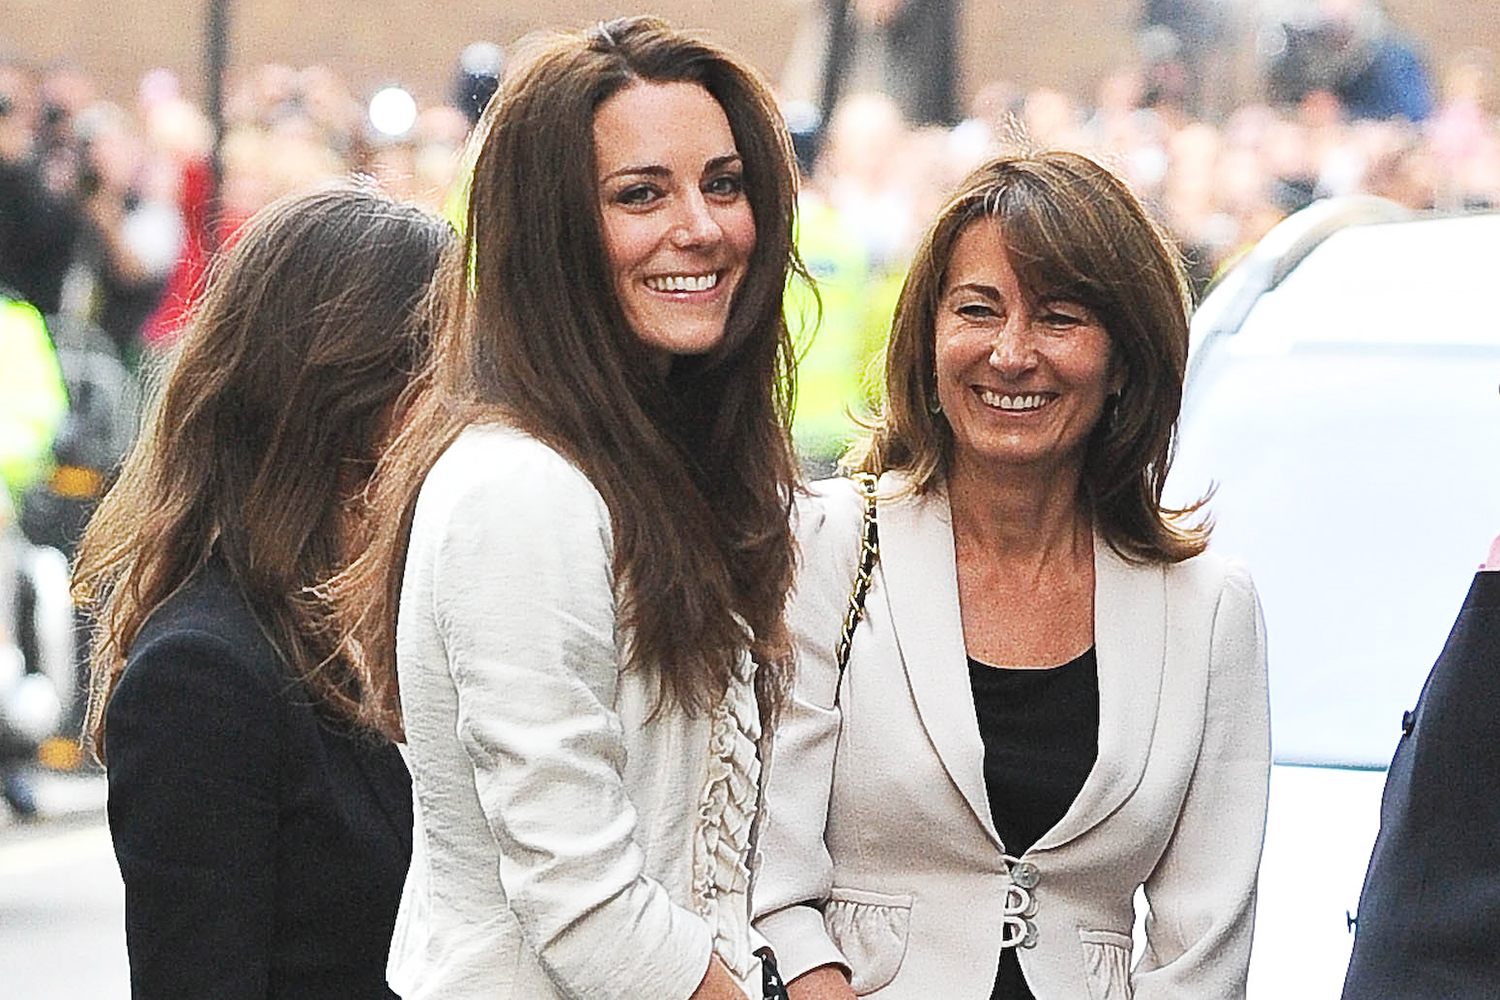 Catherine Middleton arriving with her mother Carole Middleton at the Goring Hotel on April 28, 2011 in London, England.